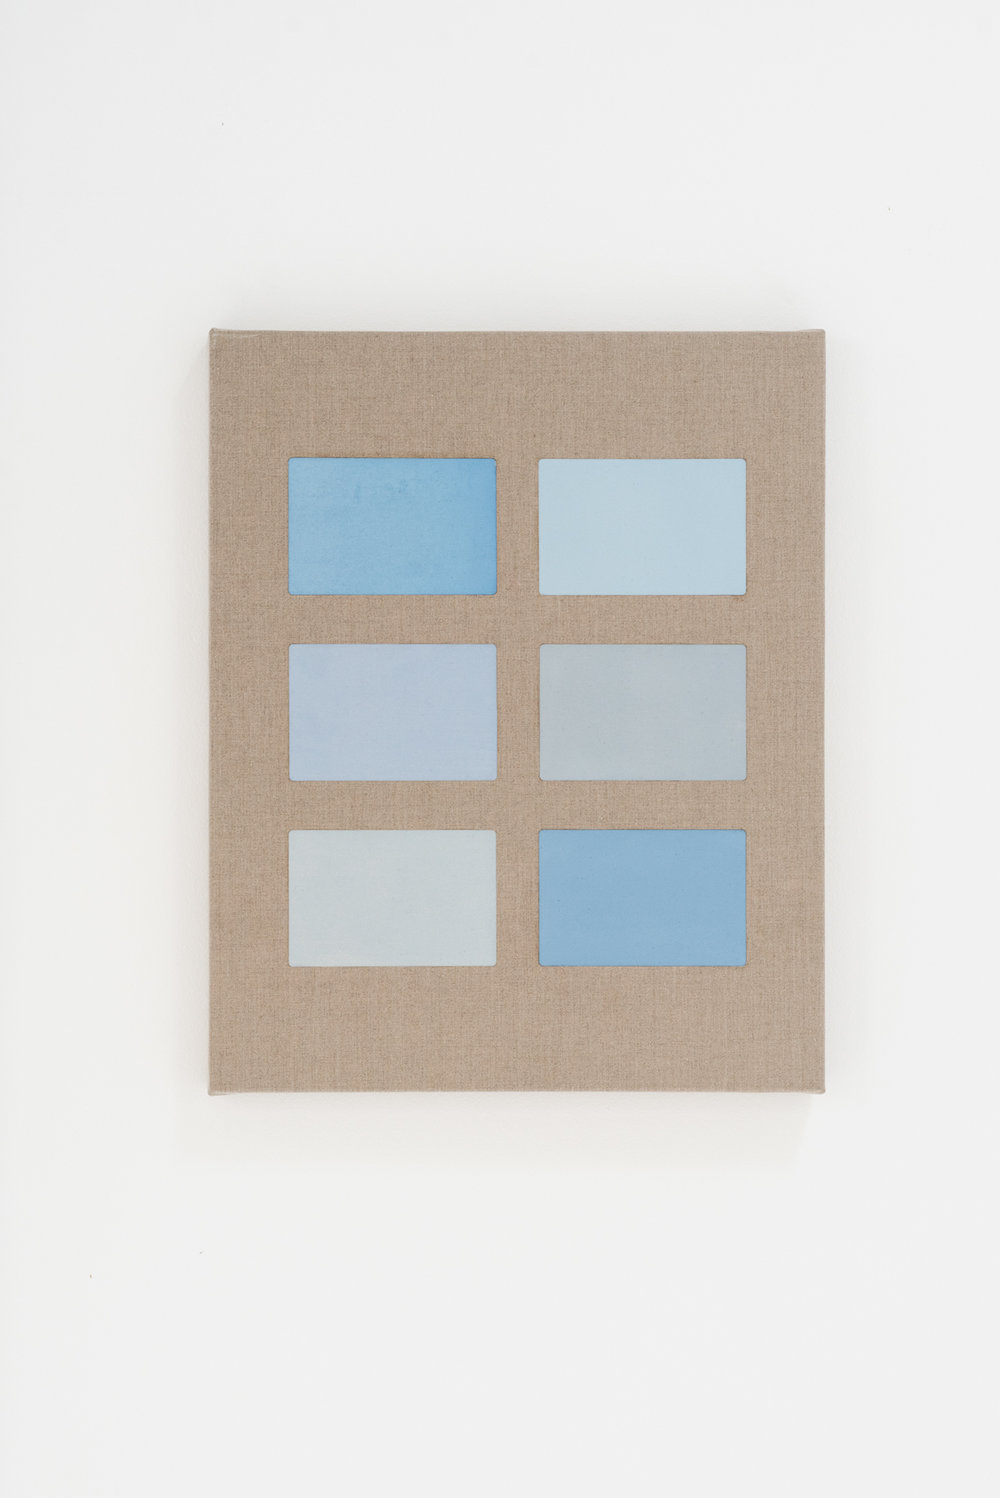 Feeling blue ,  2018 Oil and perforated linen 60 x 74 cm each